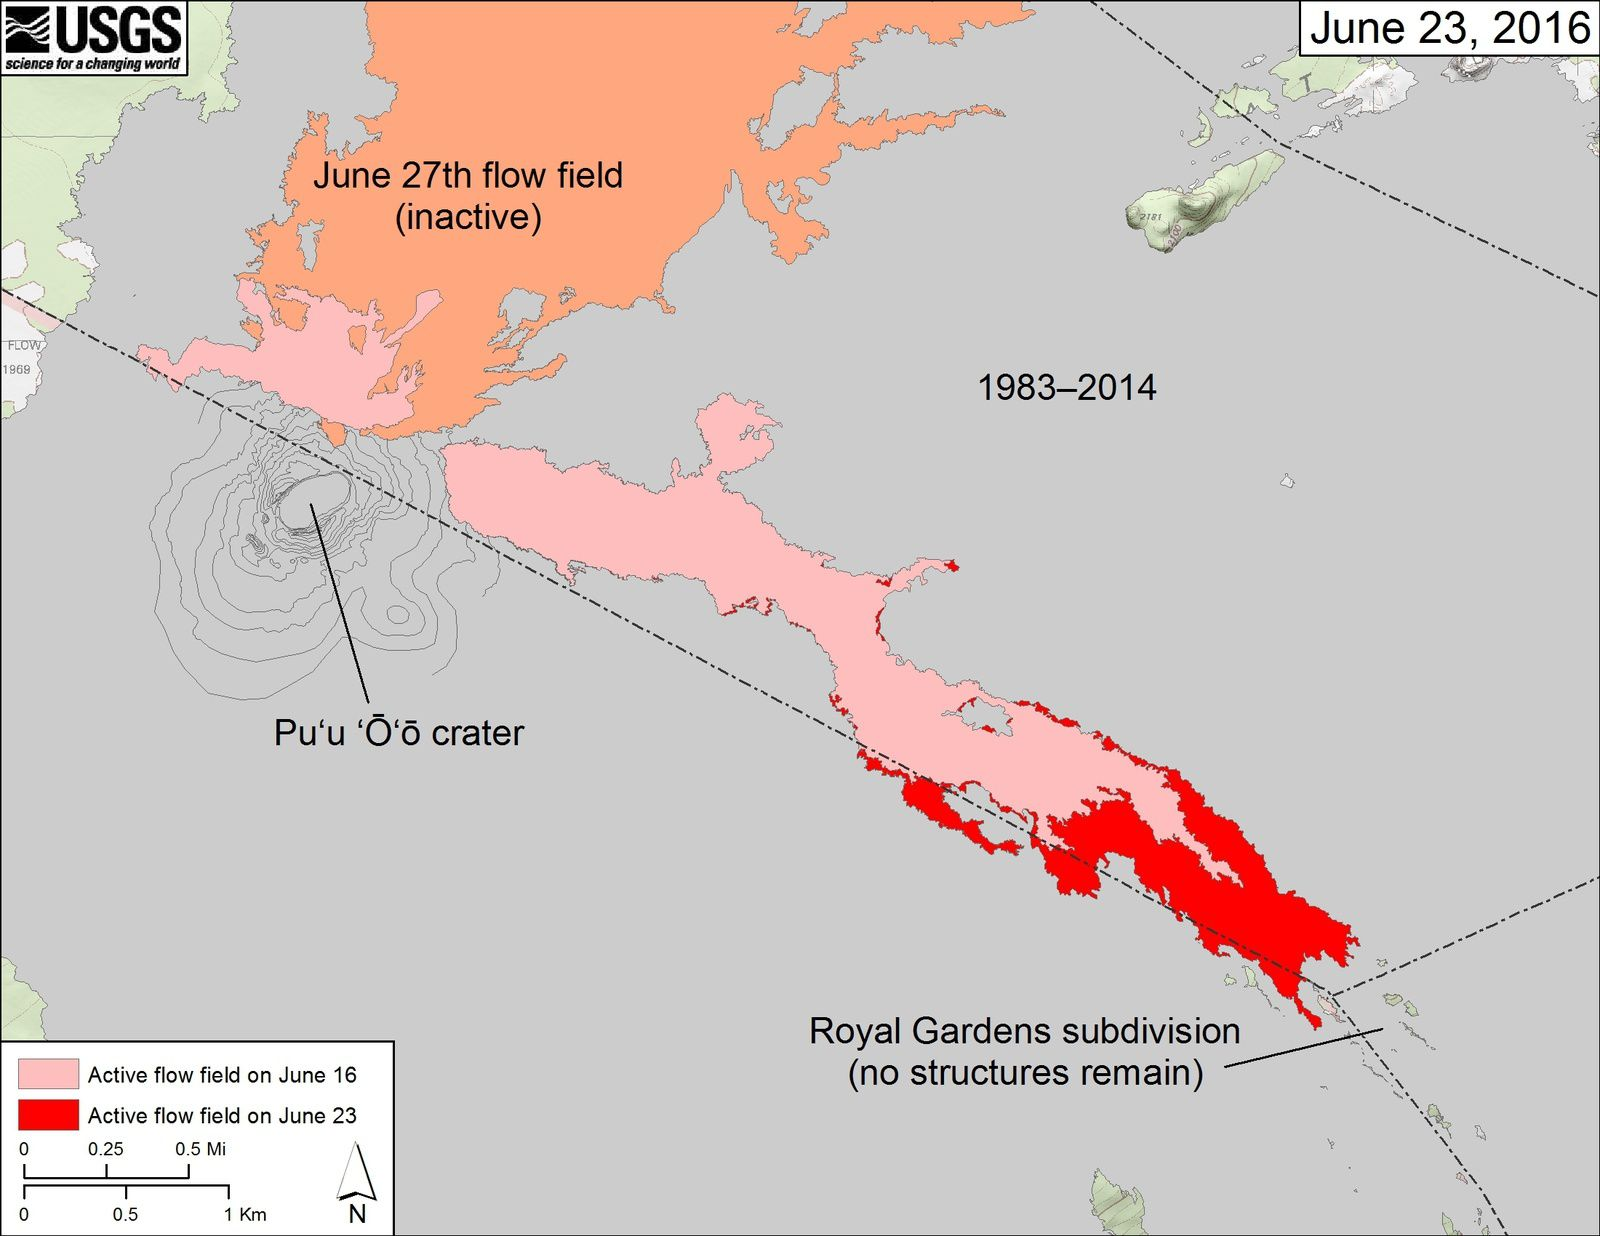 The areas covered by recent breakouts in the Pu'u O'o lava flows are in pink&#x3B; the advancement of active flows to June 23 is in red. (The area covered by the inactiveflow of June 27, 2014 is in orange, while the cast from before June 27, 2014 are in gray -. Doc HVO